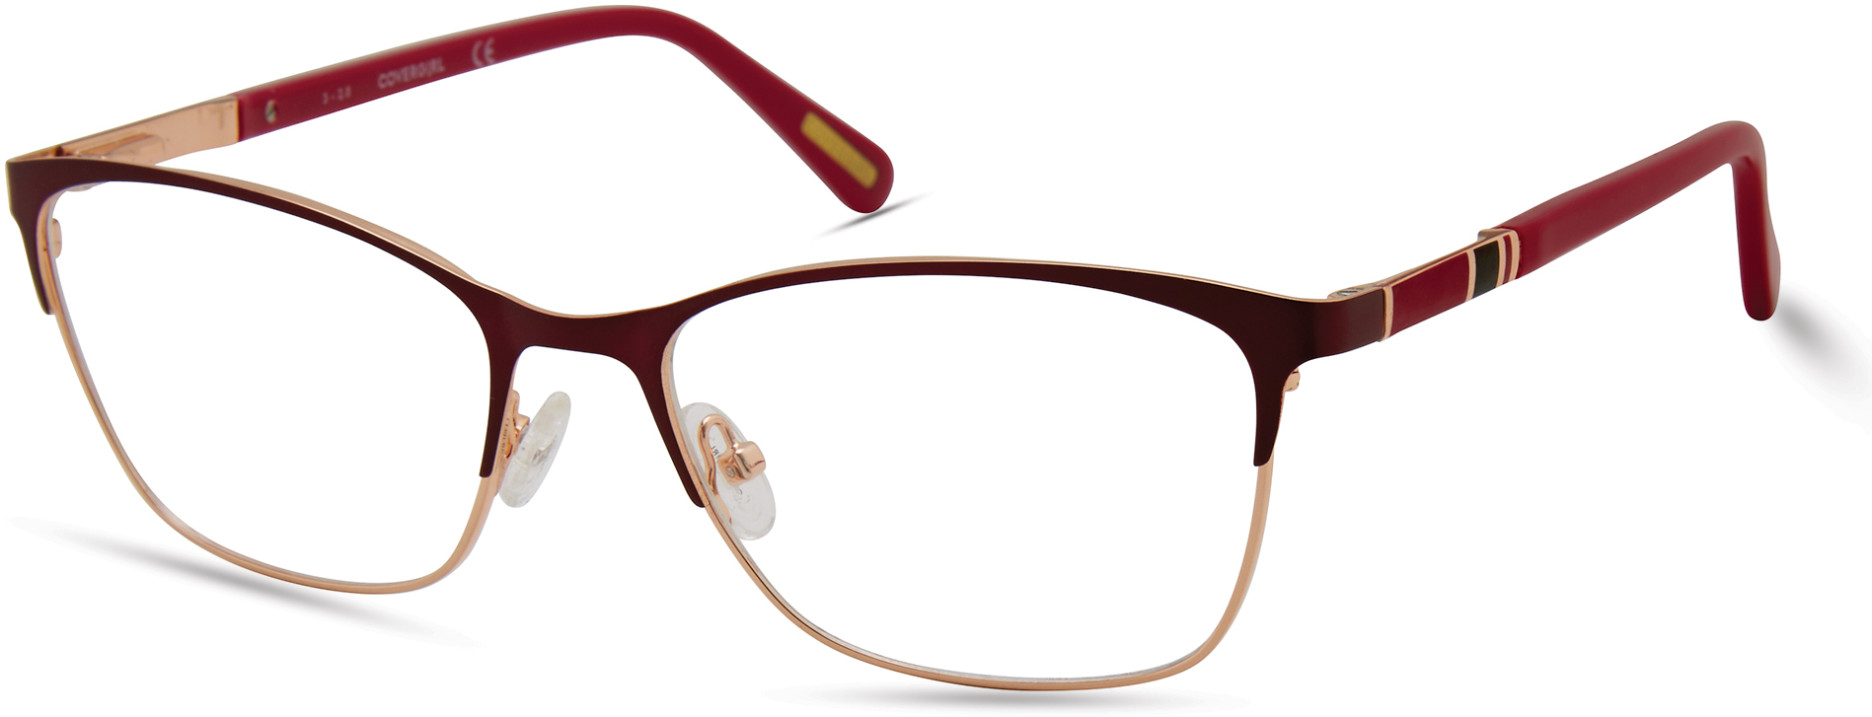 Cover Girl Eyeglasses<br>CG 4005